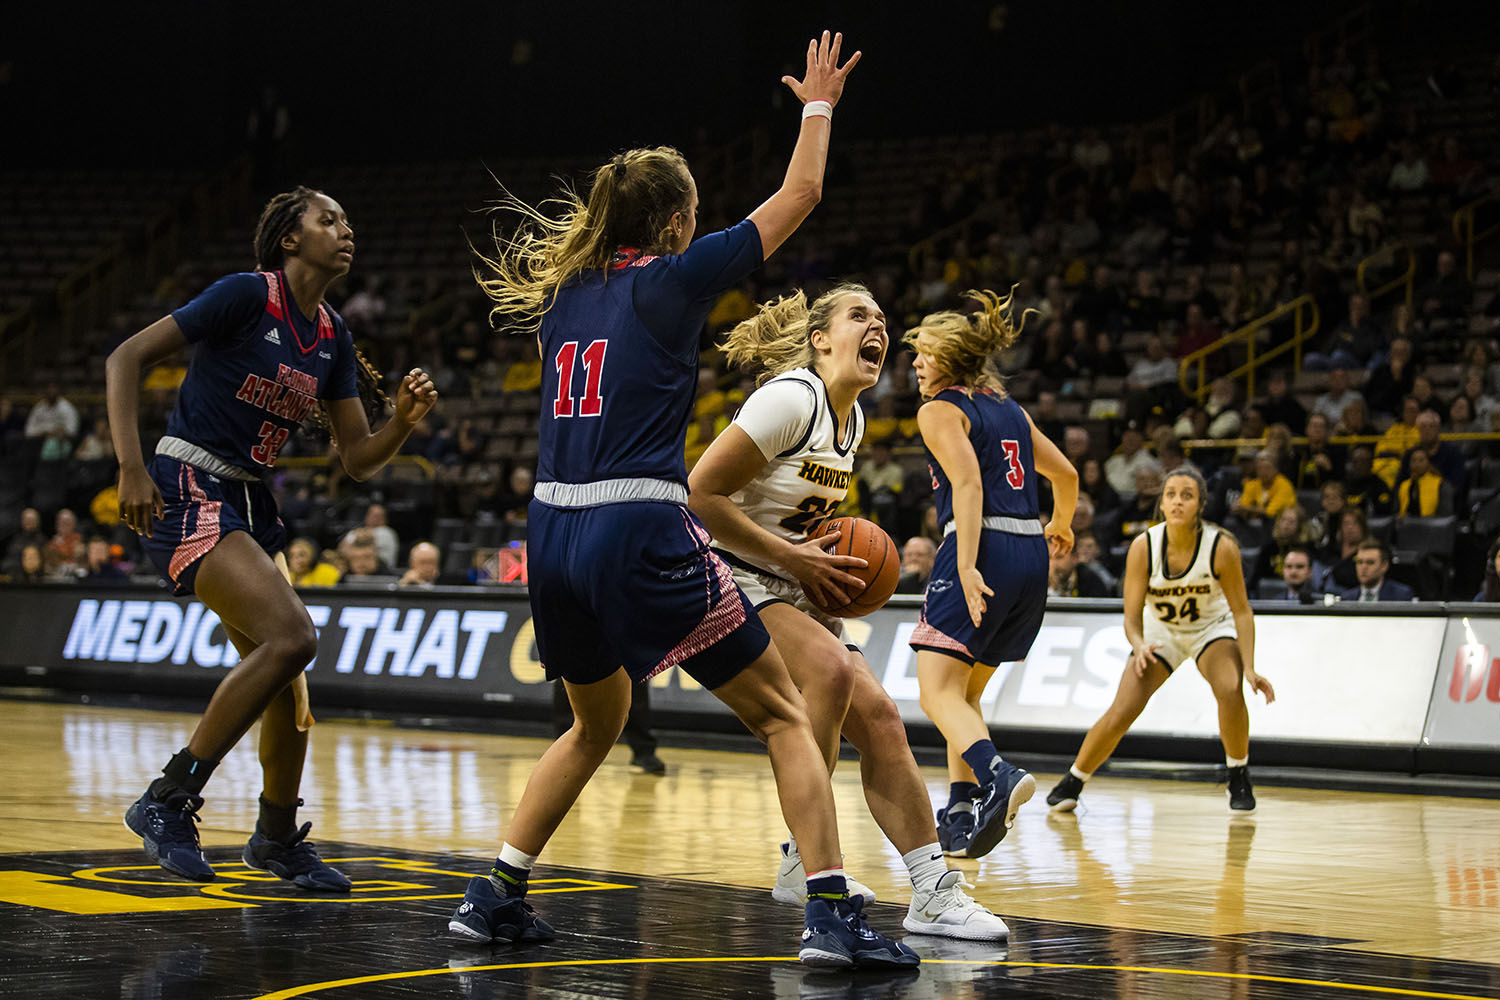 Iowa guard Kathleen Doyle drives the ball during the women's basketball game against Florida Atlantic on Thursday, November 7, 2019. The Hawkeyes defeated the Owls 85-53.